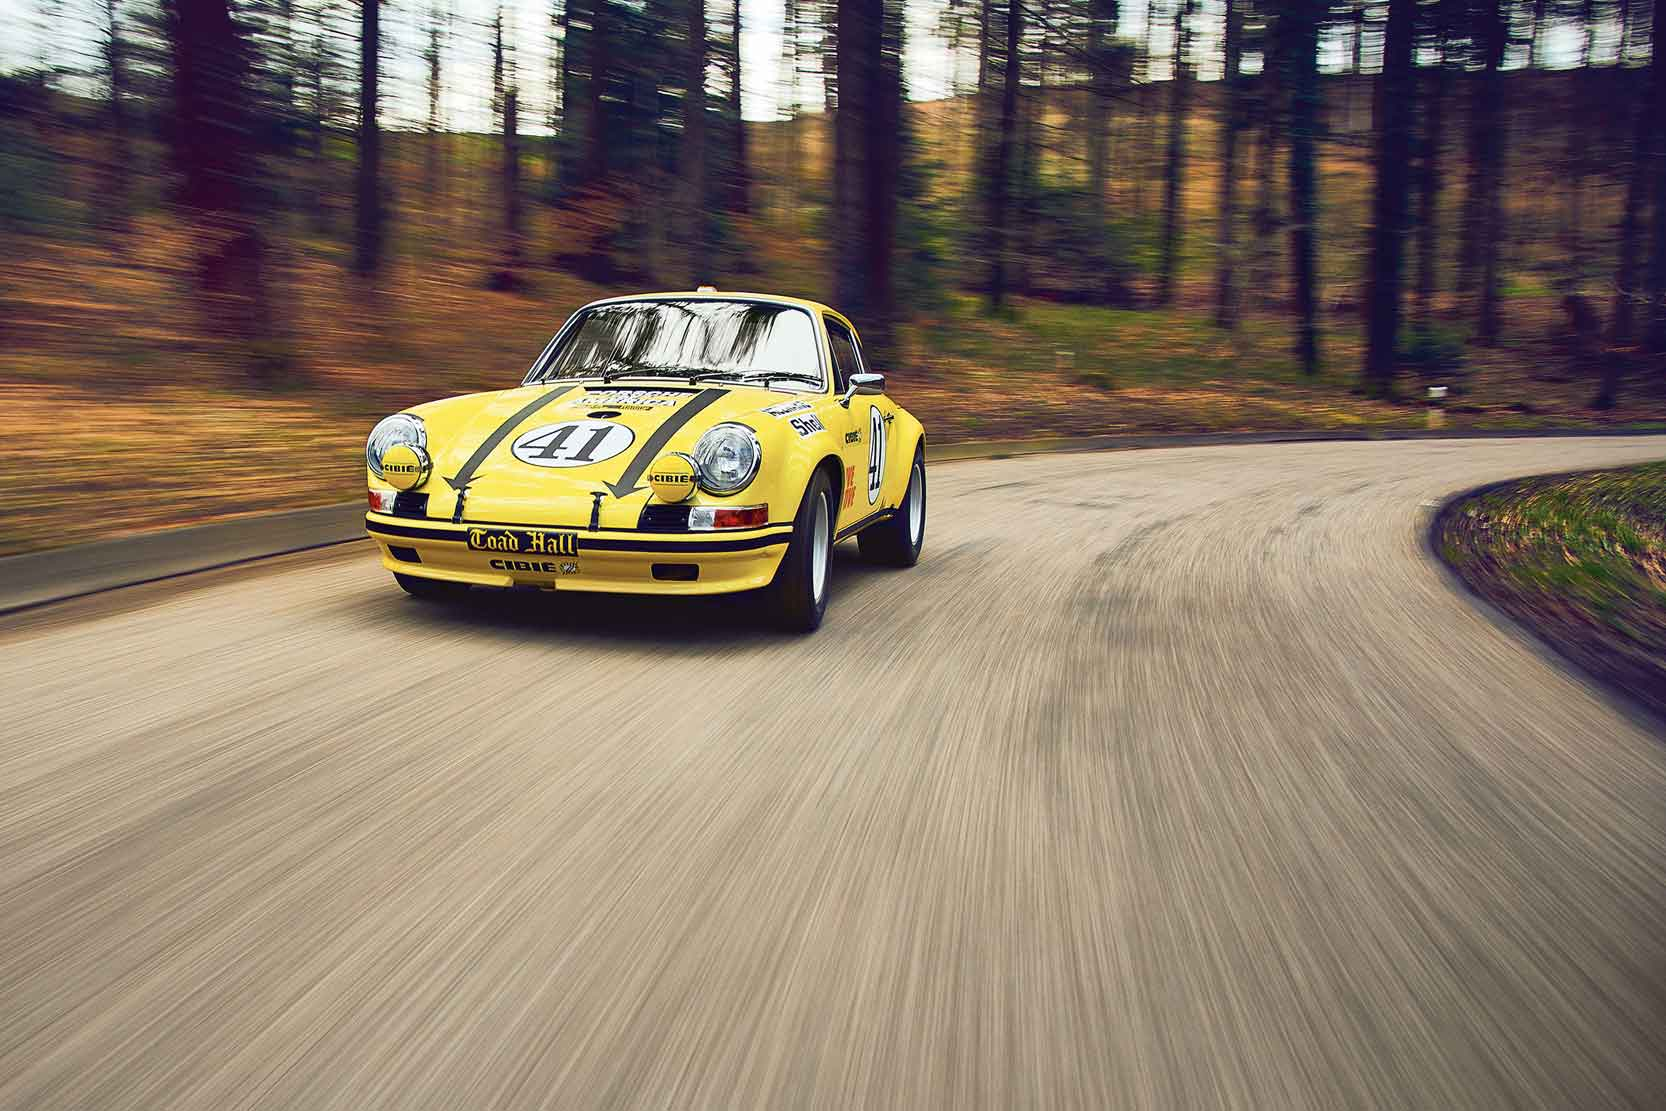 Exterieur_Porsche-911-2-5-ST-Take-Two_8